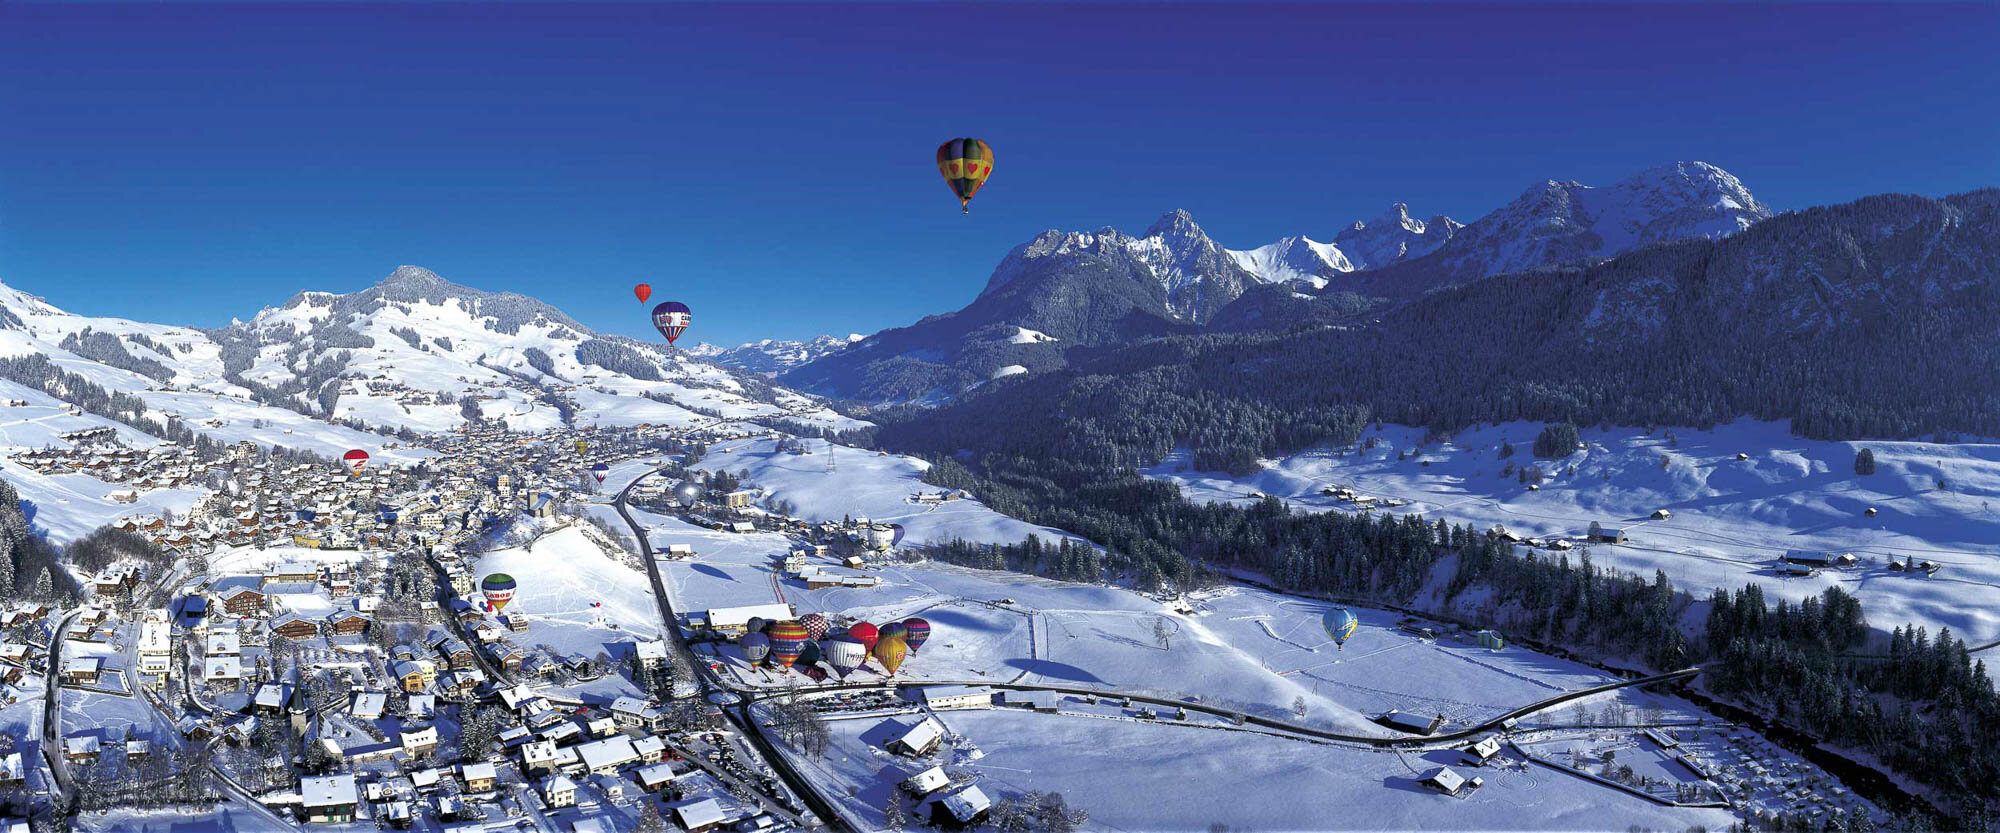 Hot air ballooning at Chateau-d'Oex (1000 m) in the Vaud Alps. Copyright by Switzerland Tourism